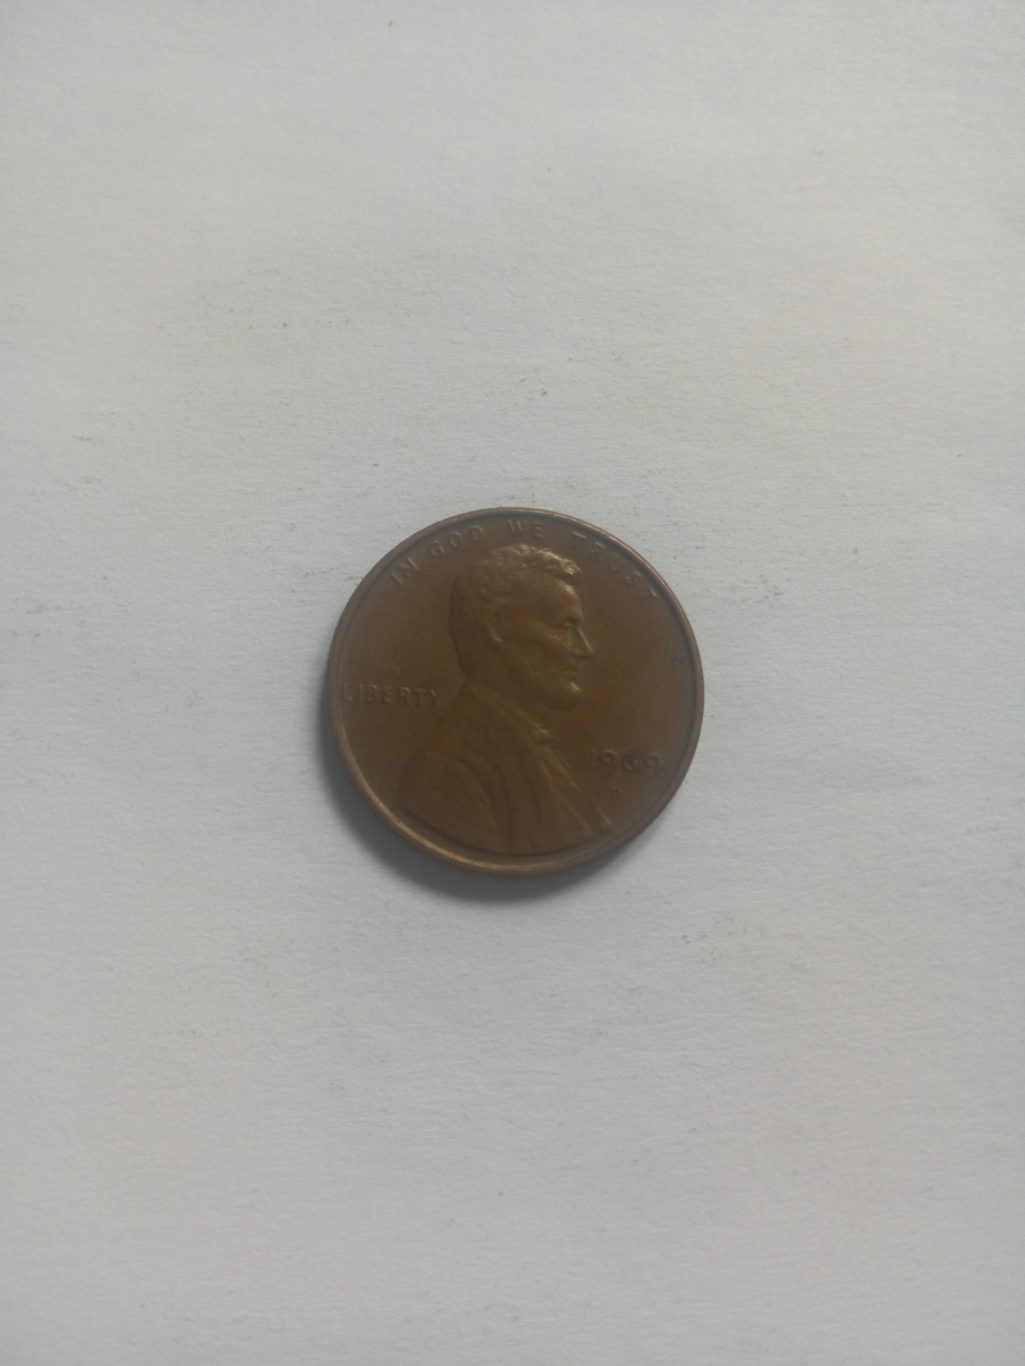 1969_united states of america 1 cent